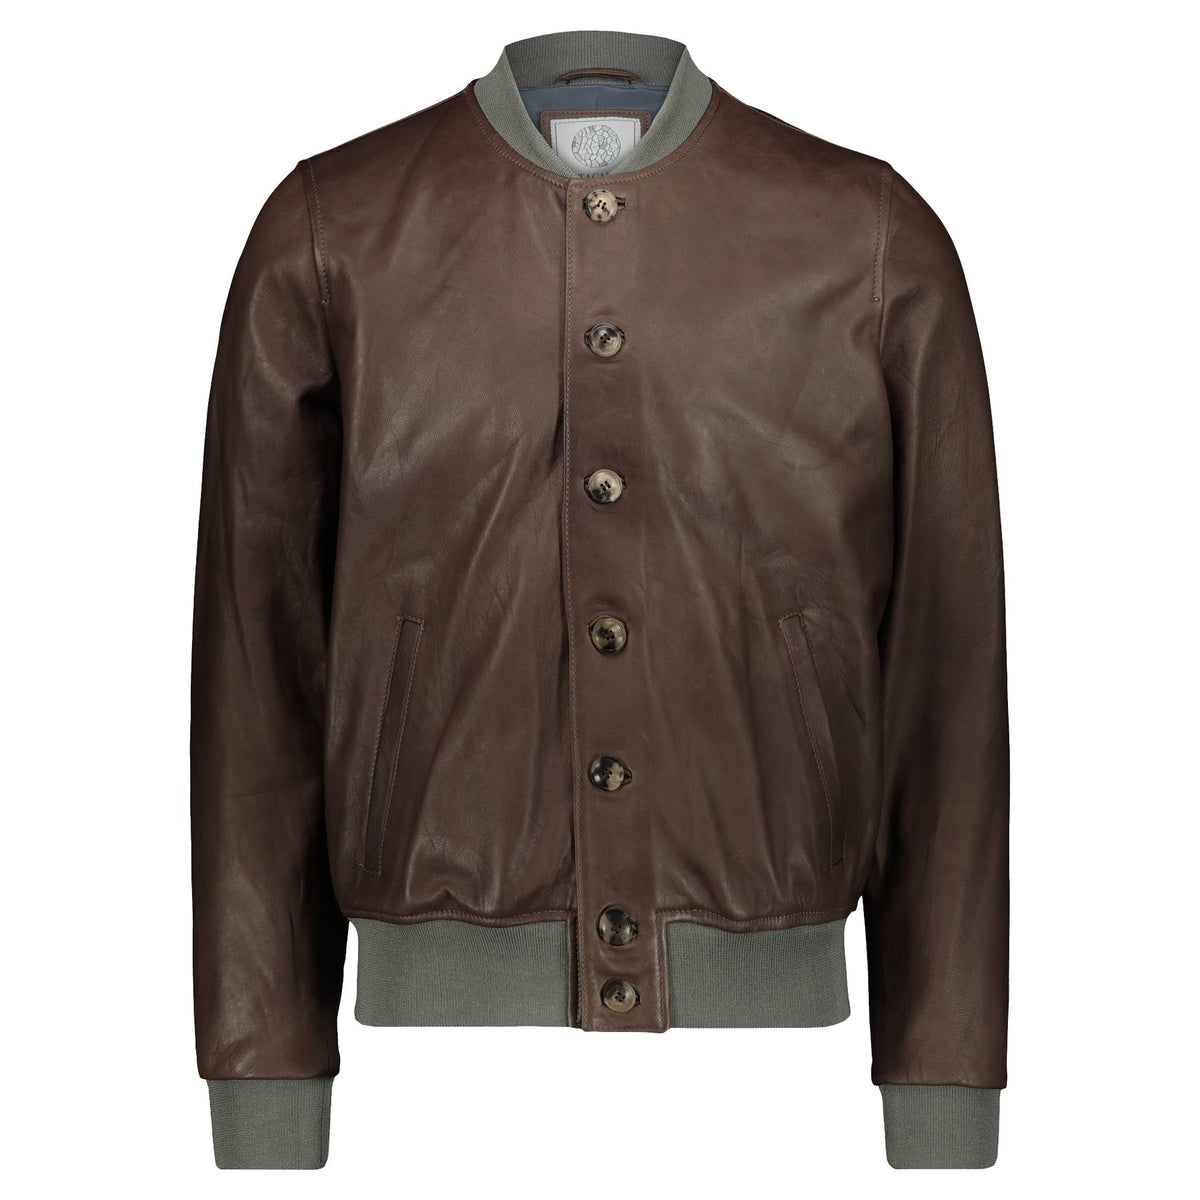 Atacama Steve Bomber Brown Jacket